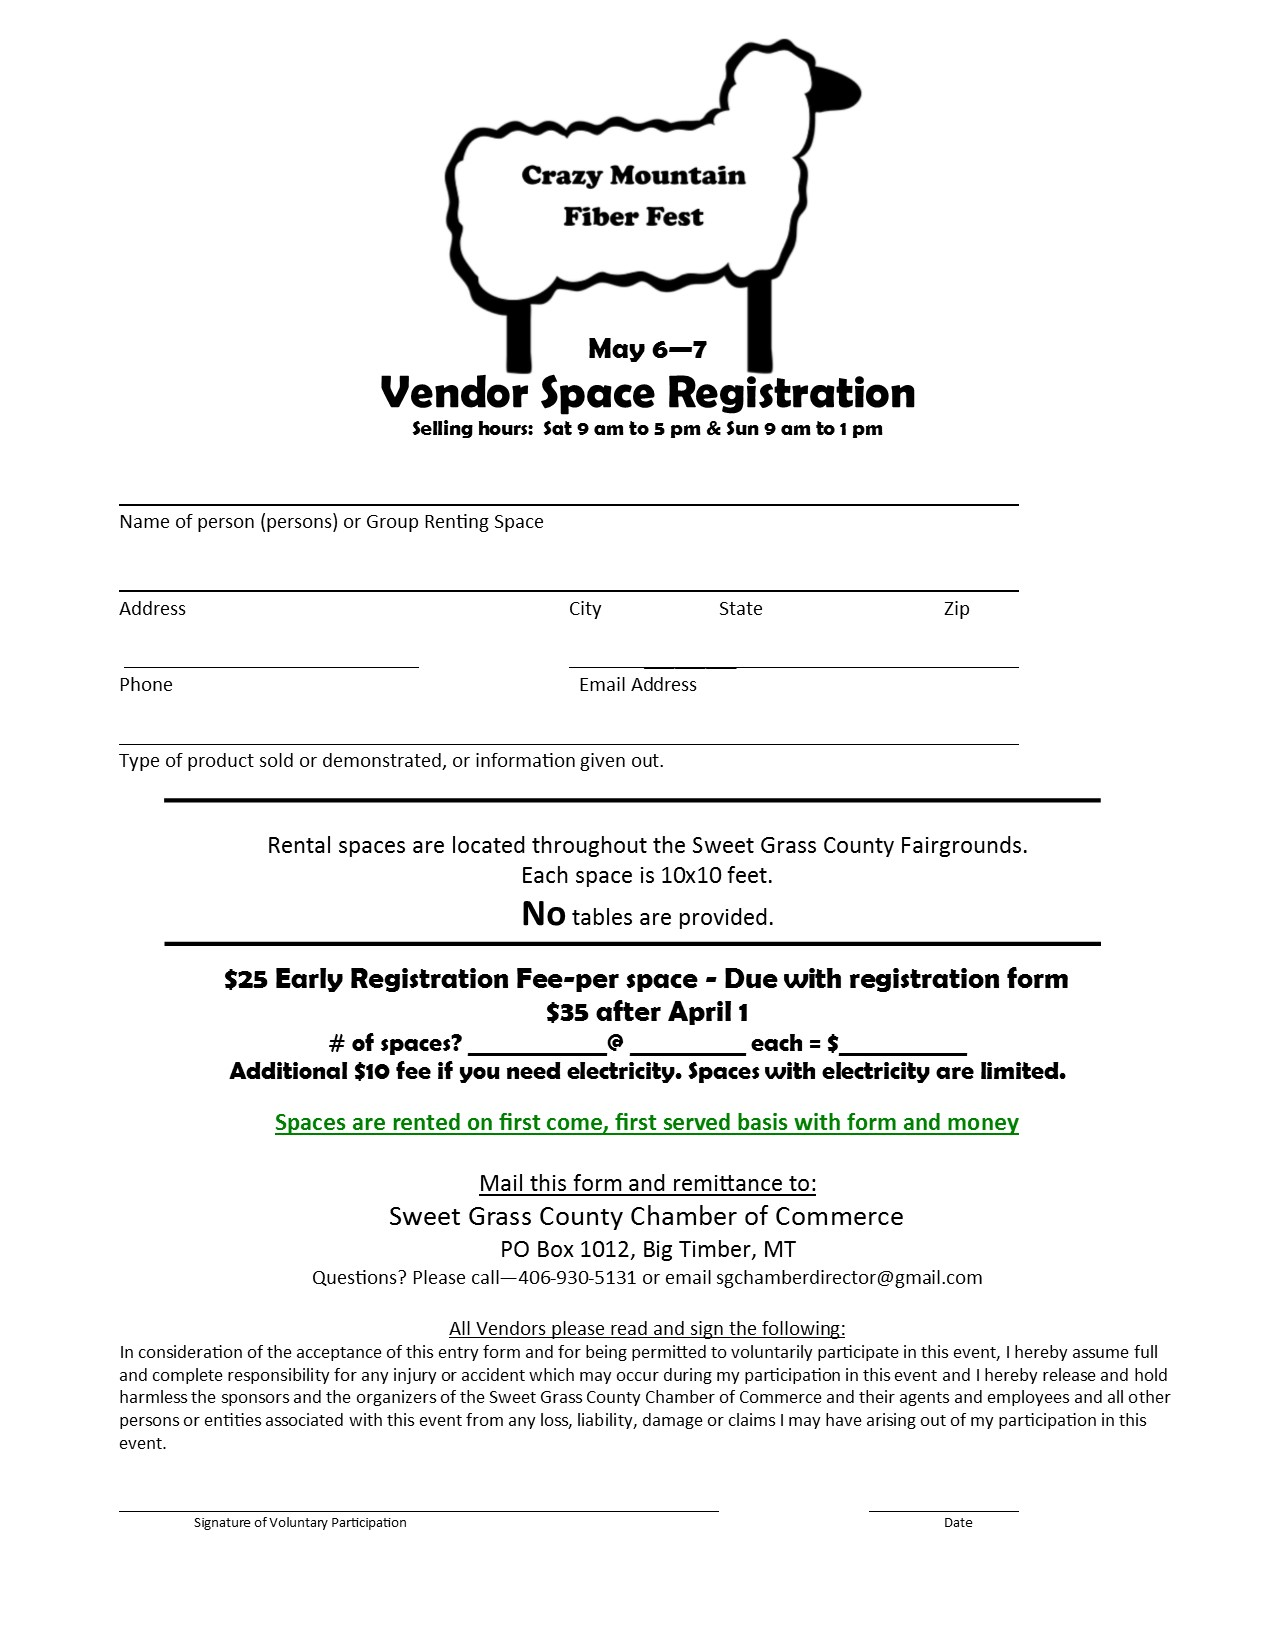 Vendor-Registration-Form-w318.jpg